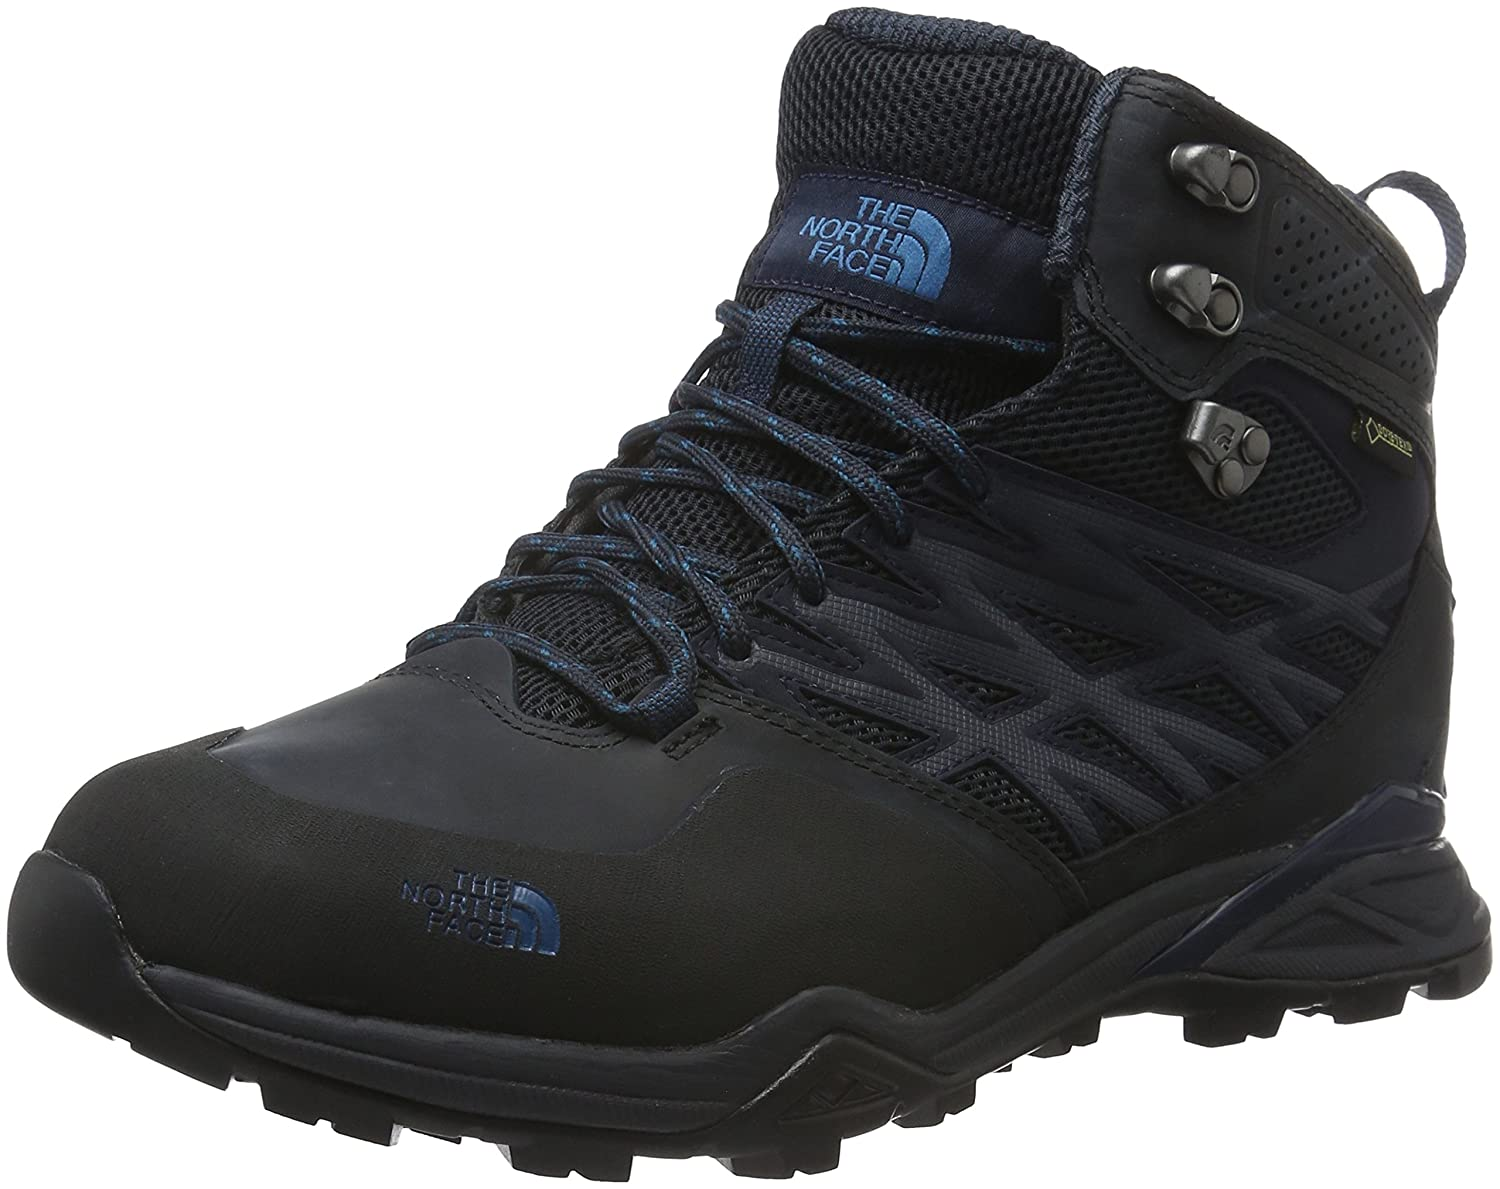 The North Face Men's Hedgehog Hike Mid Gore-Tex Low-Top Sneakers